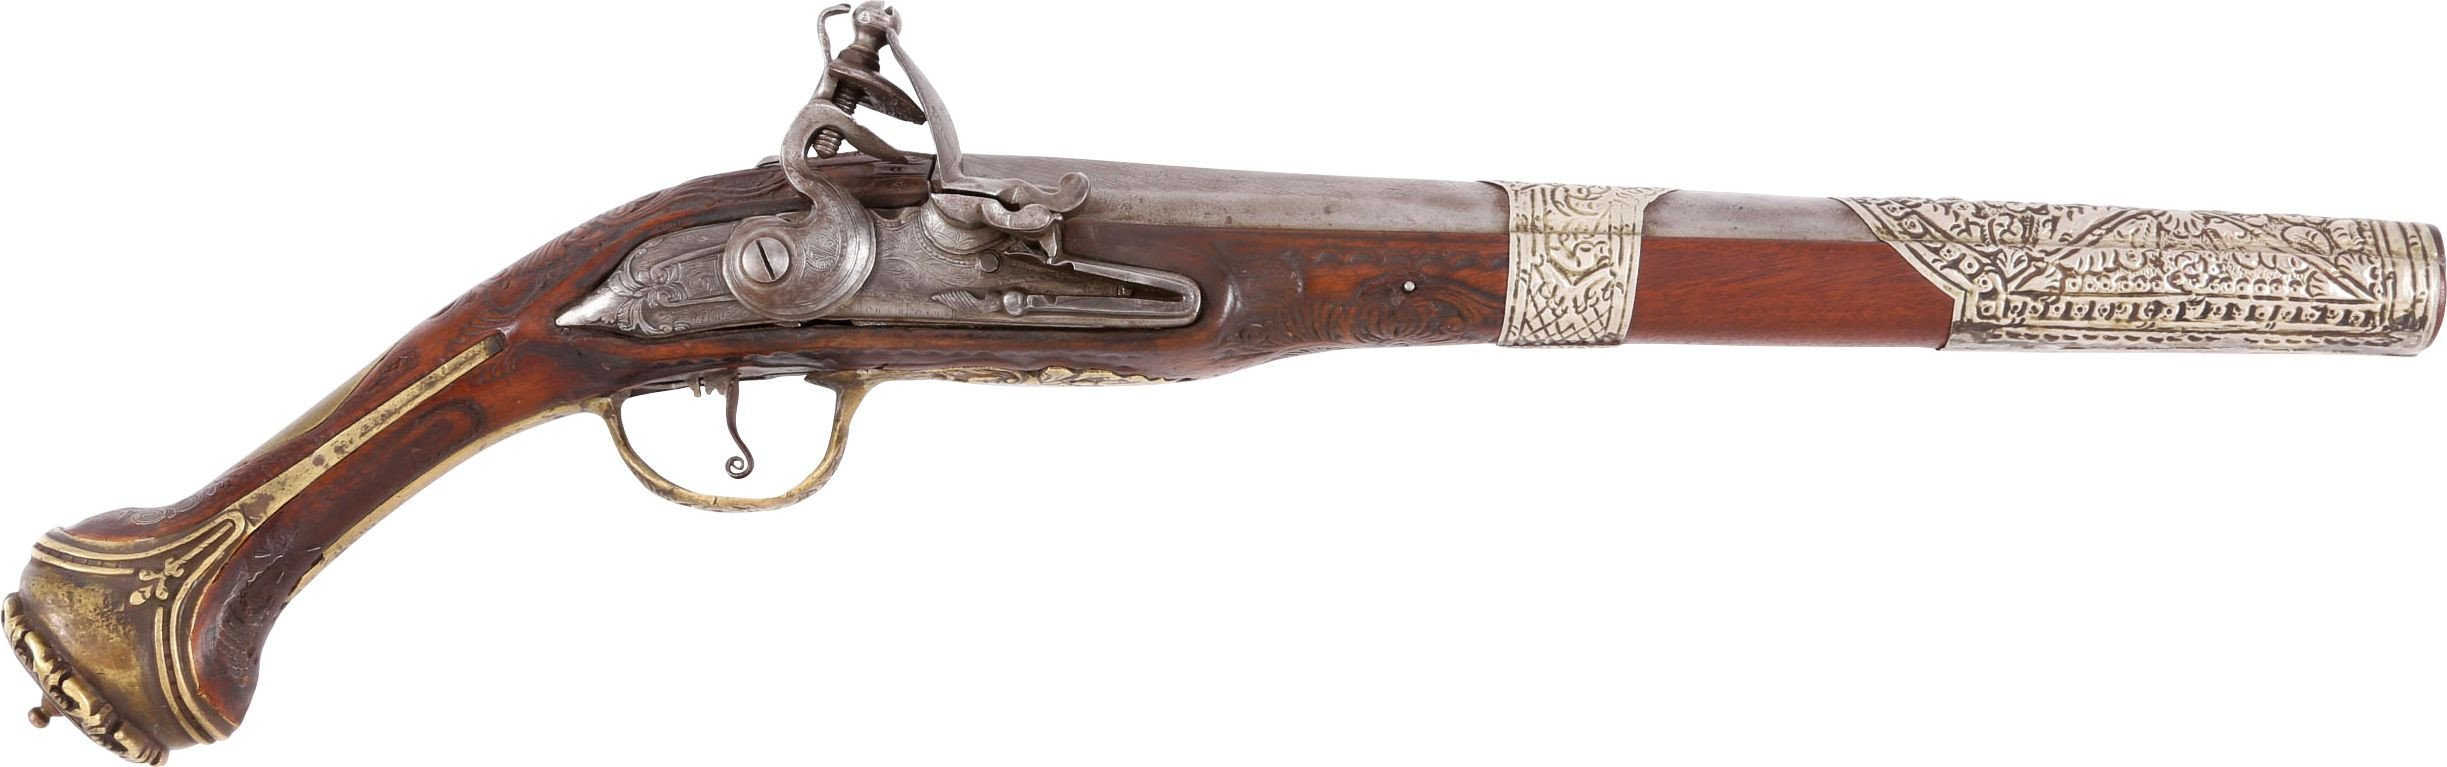 Large Ottoman Flintlock Pistol C.1750-1800 - Product